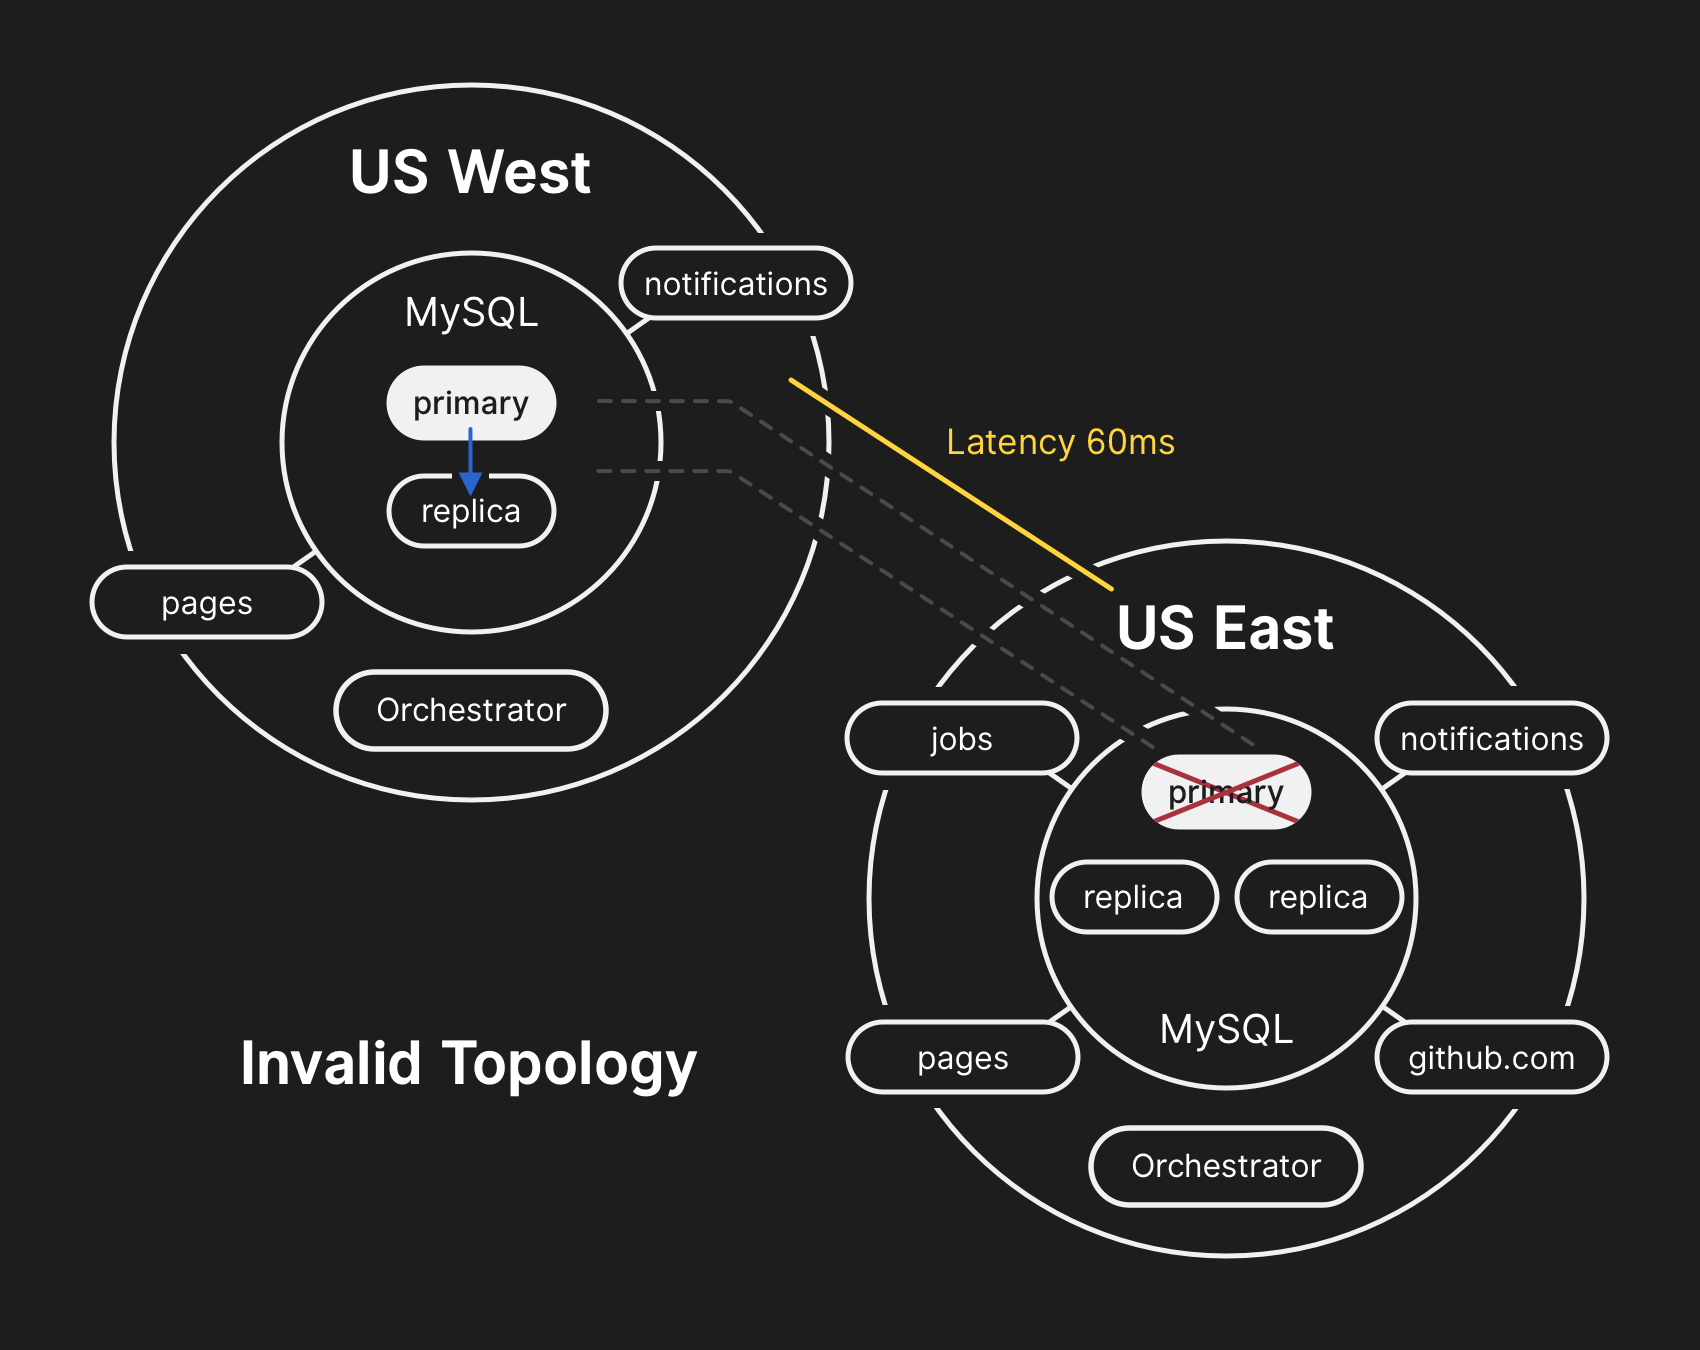 In the invalid topology, replication from US West to US East is broken and apps are unable to read from current replicas as they depend on low latency to maintain transaction performance.